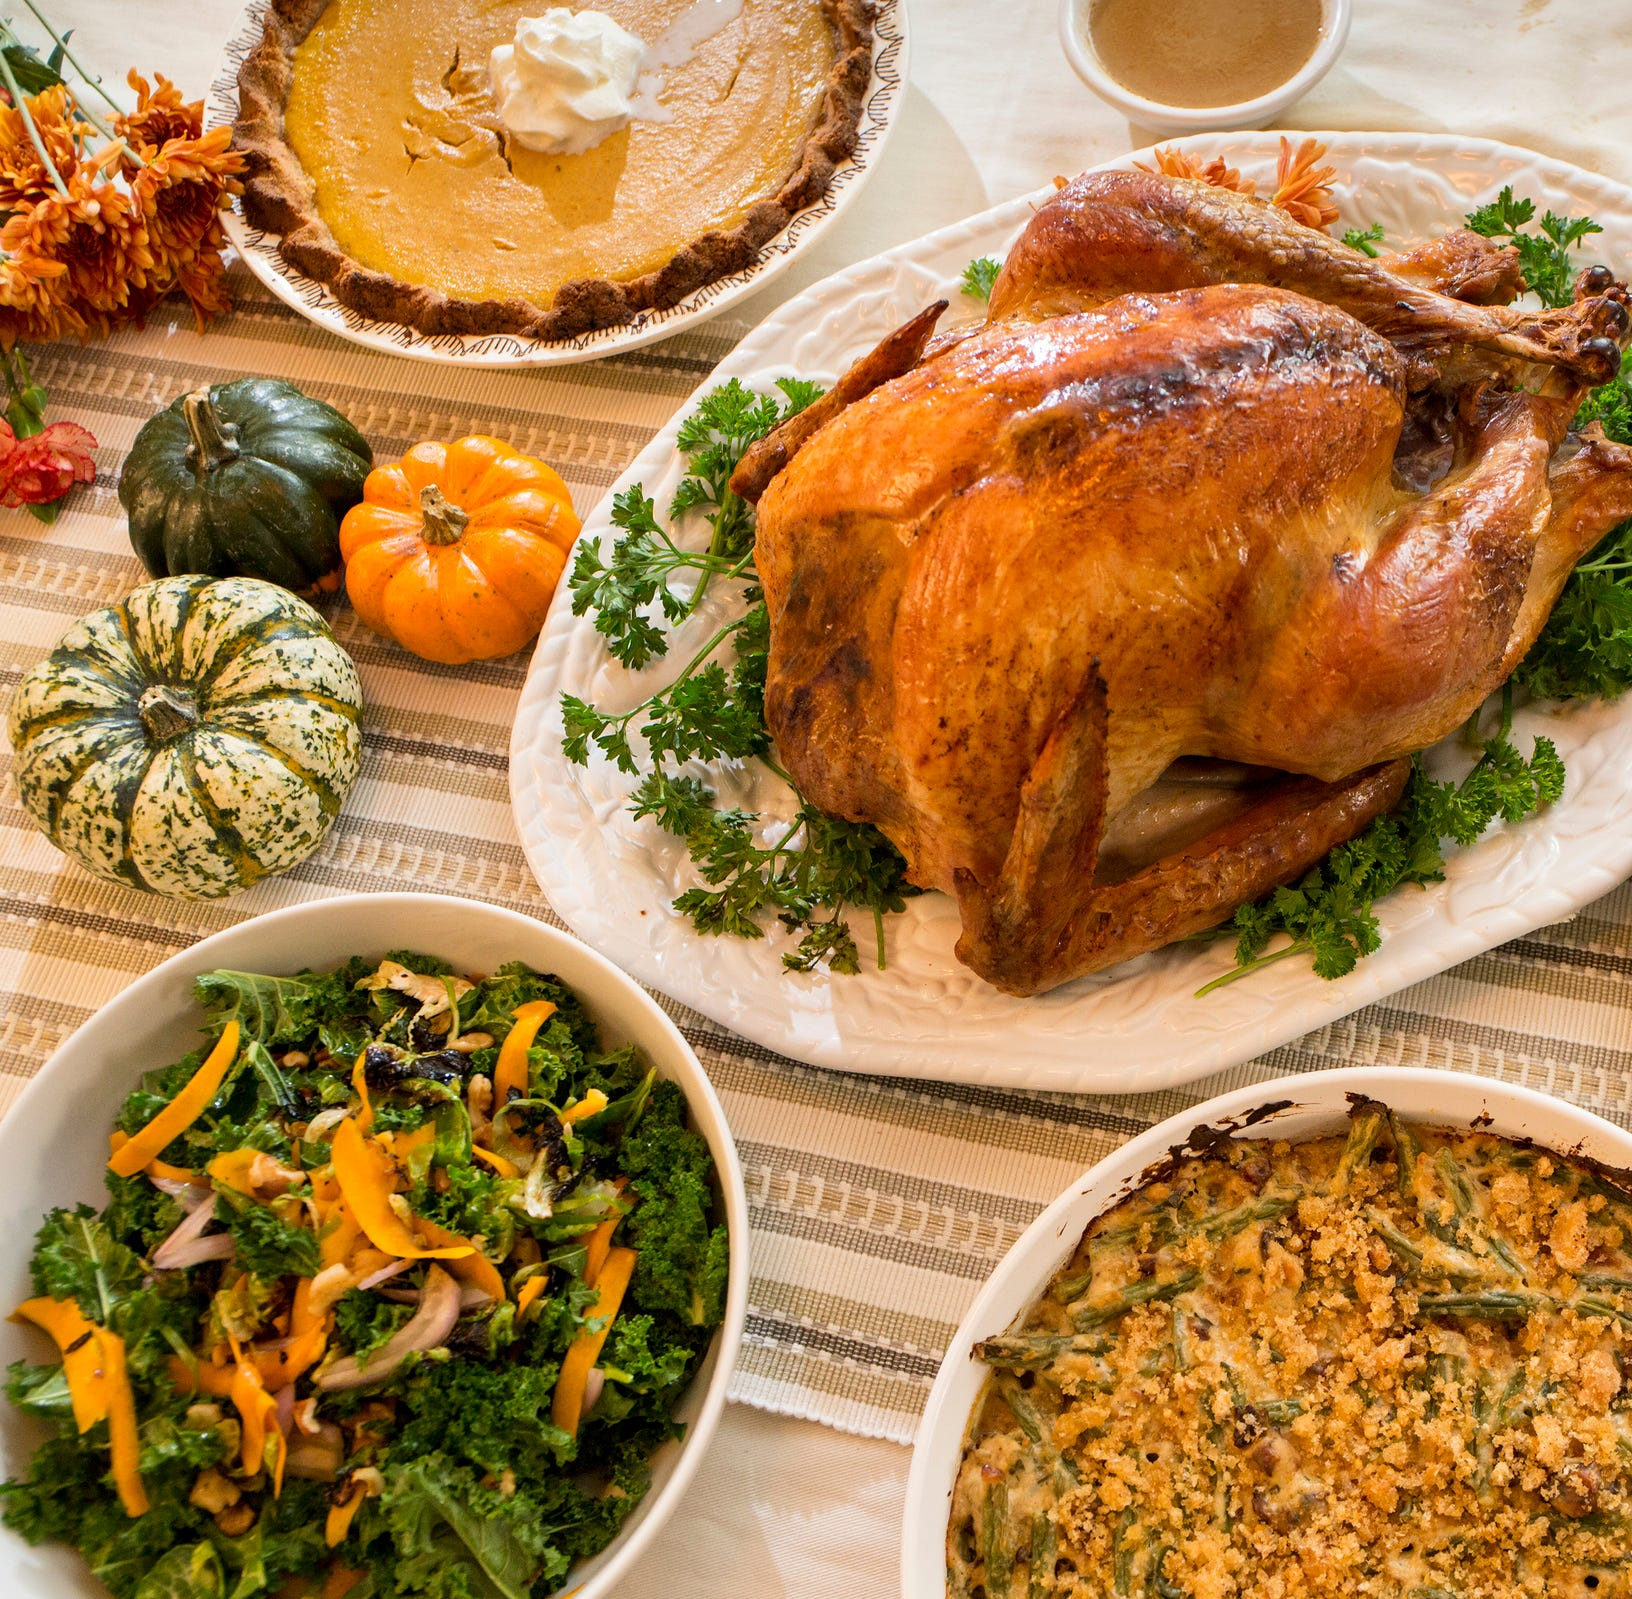 Here's how keto dieters will embrace Thanksgiving